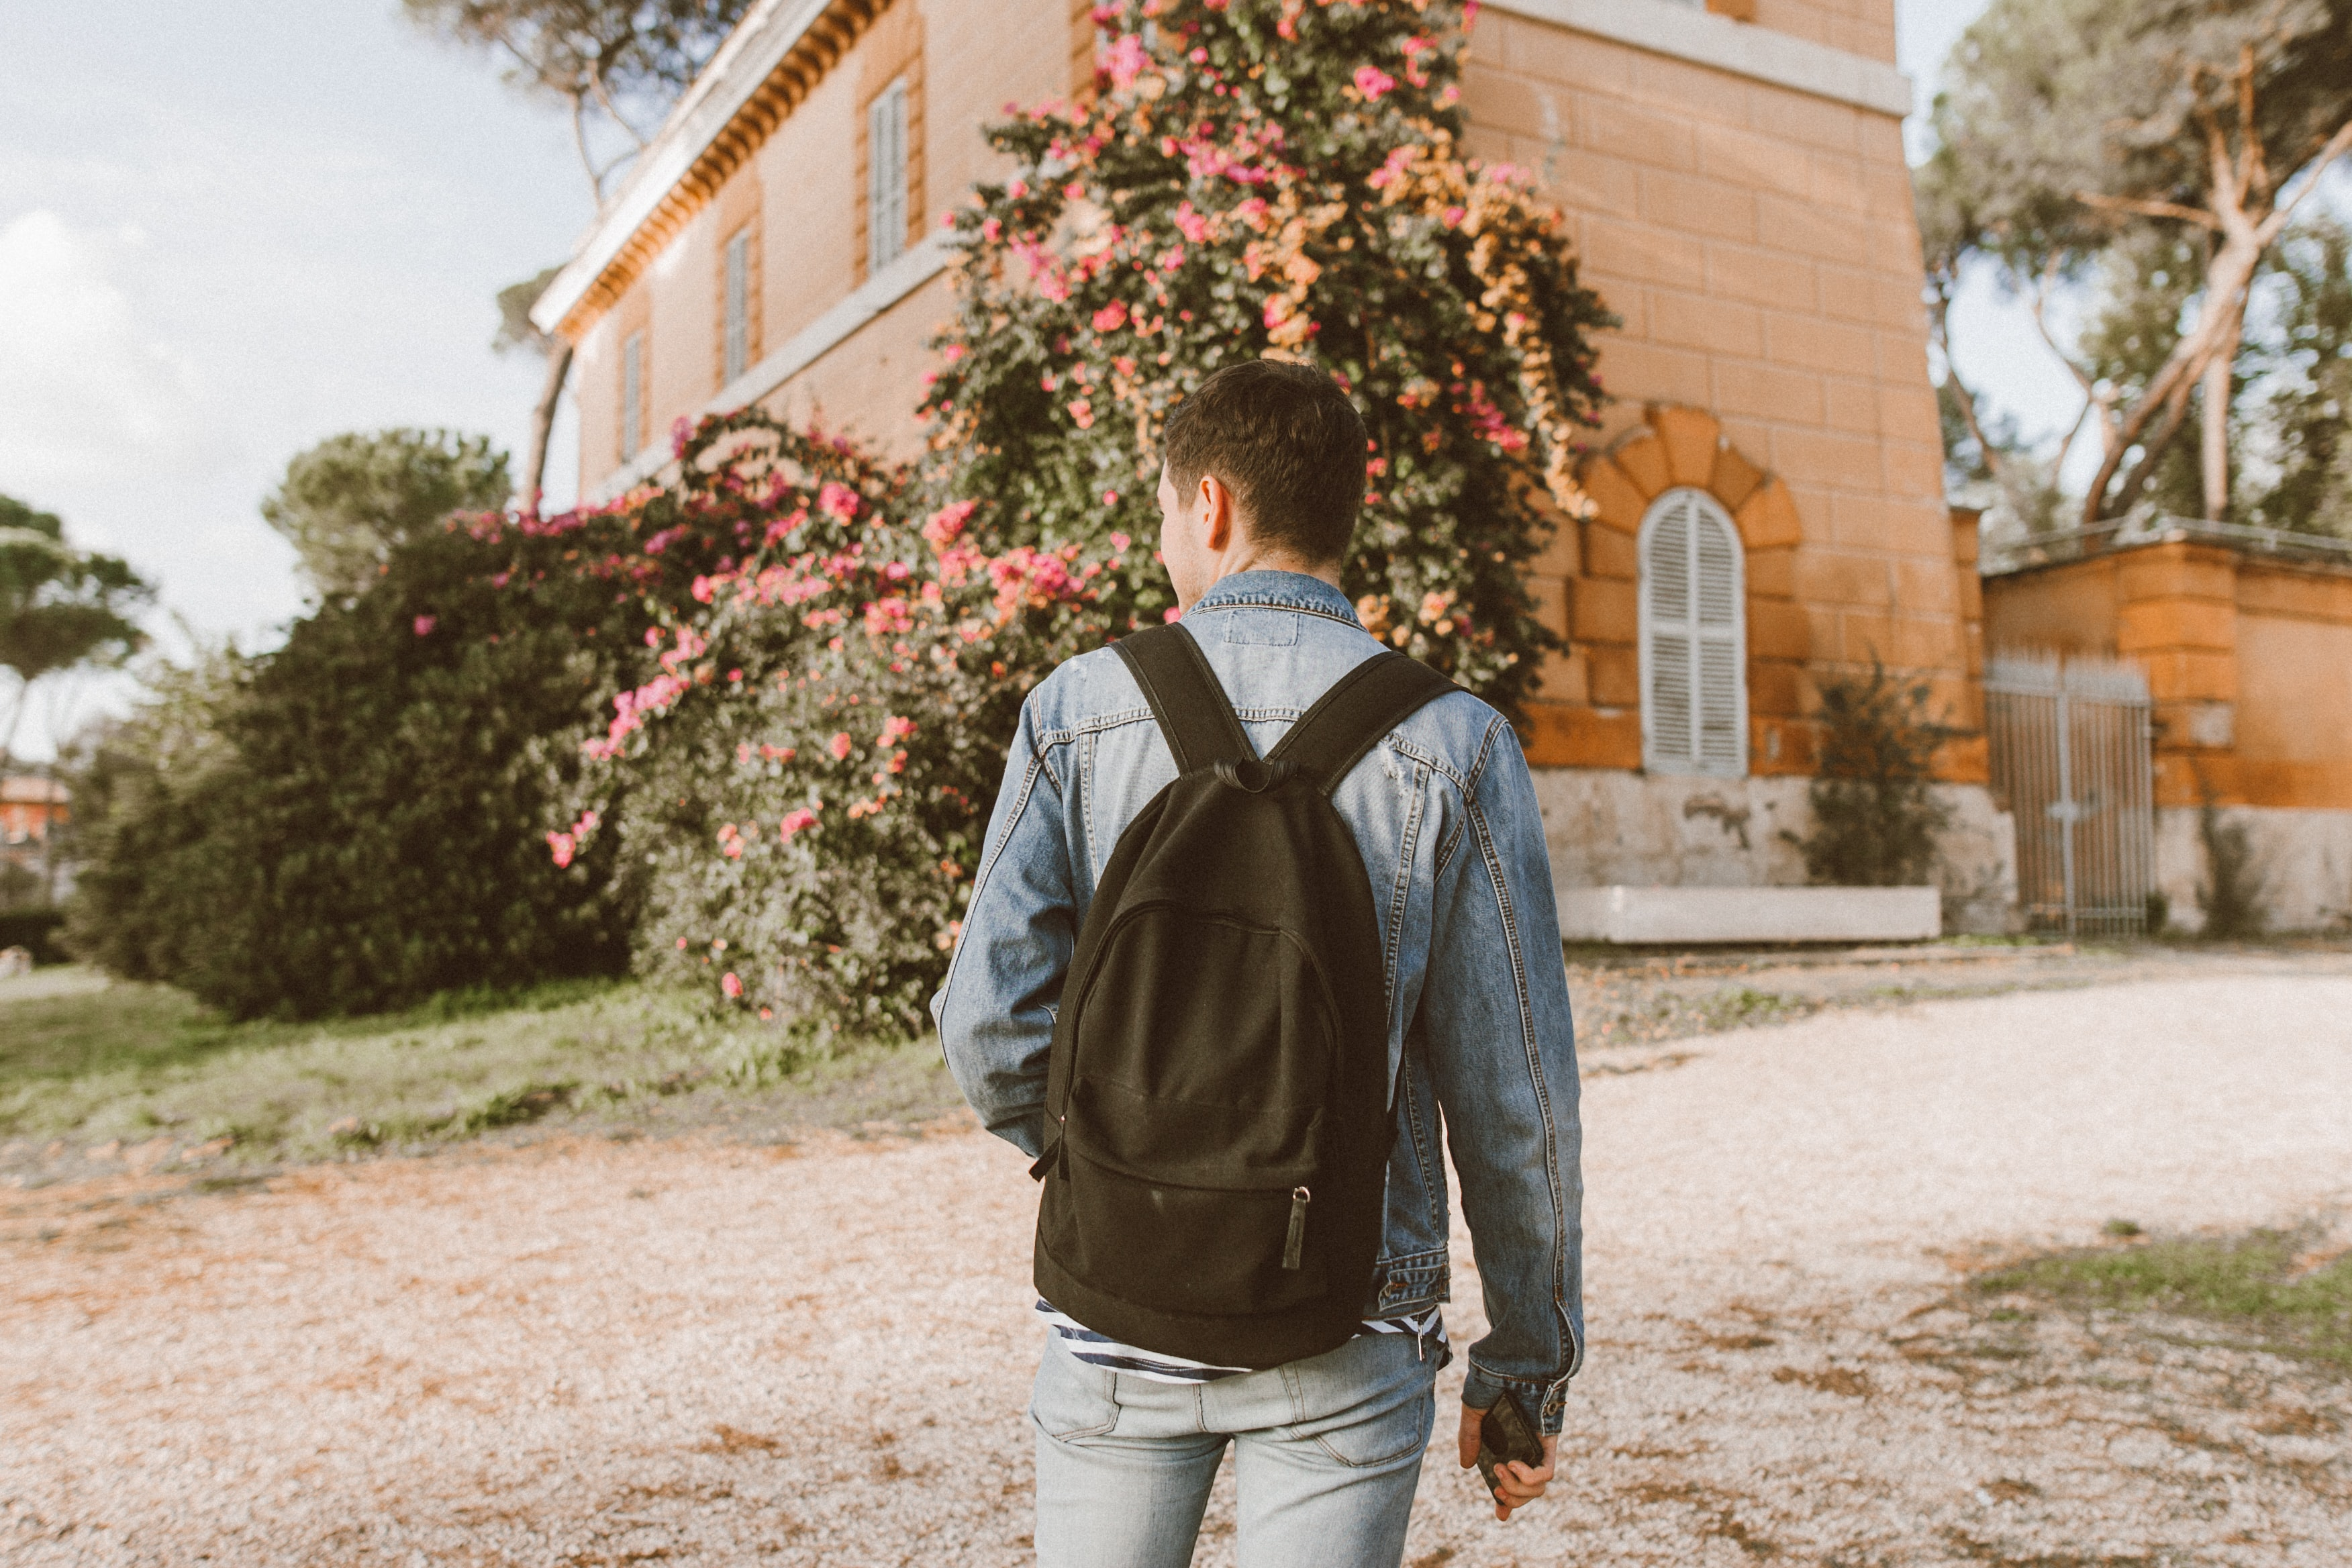 man with backpack standing in front of a house